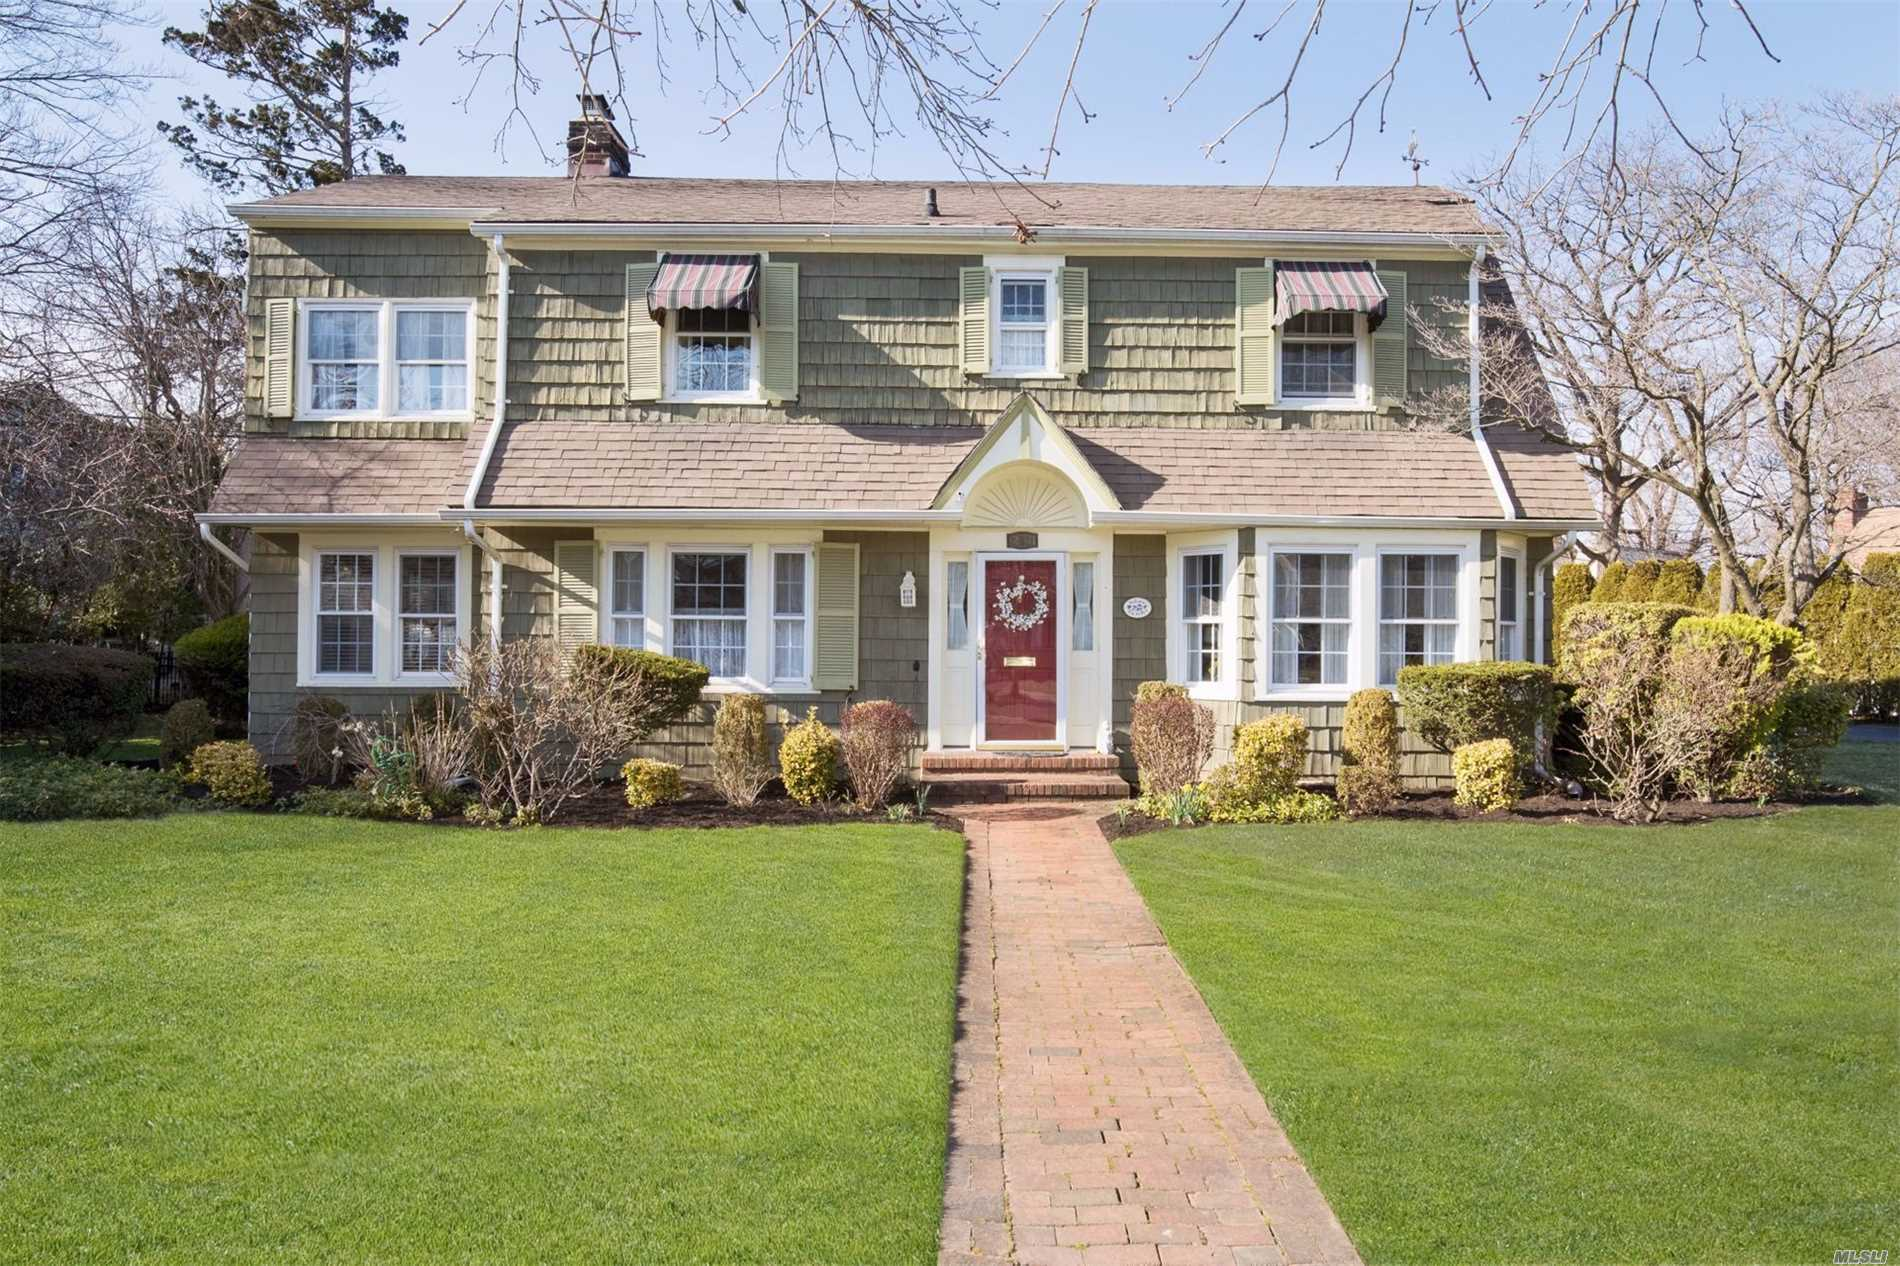 Lovely Colonial on large parcel in Bryn Mawr section, Wilson schools. Entry hall divides large living room with fireplace, adjoining family room, and a Large and sunny dining room. Eat-in Kitchen, white cabinets, granite countertops, adjoining laundry room, powder room. Outside entrance leading to relaxing deck overlooking large and lush landscape. Upstairs is large master suite, 1 bedrooms, and 2nd bedroom with adjoining tandem room, and full hall bath. Finished basement with wet bar.